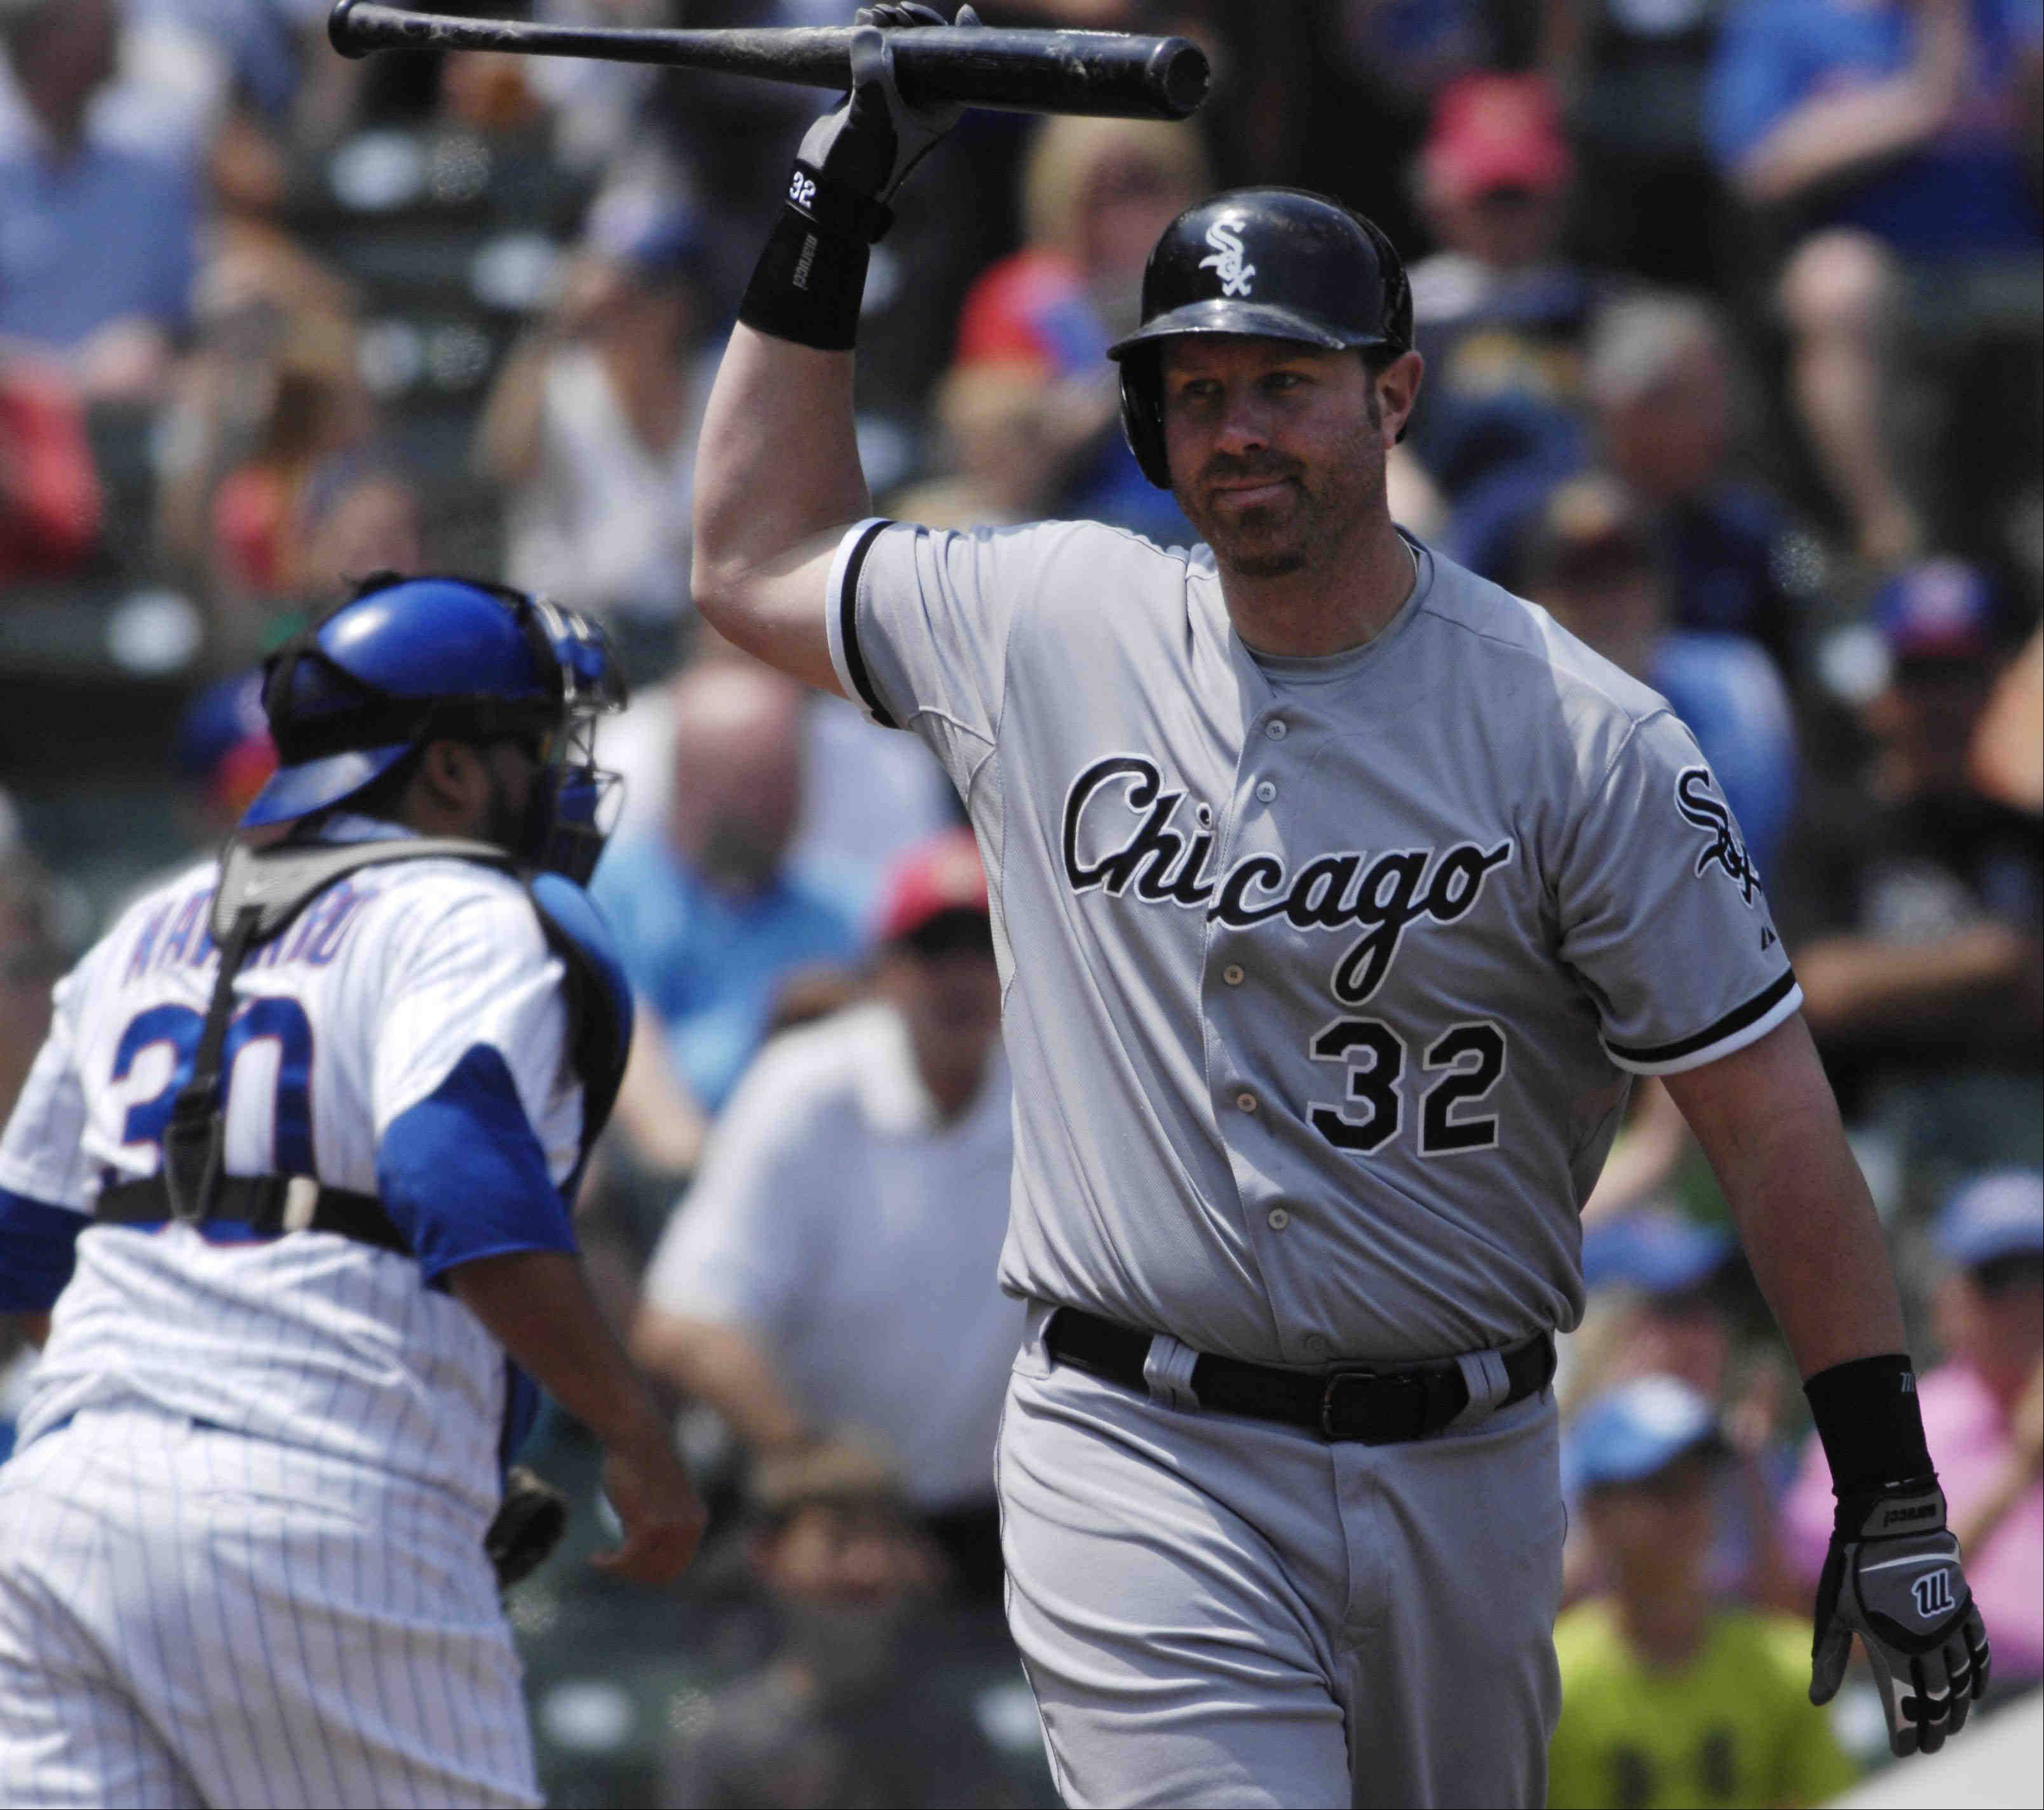 Chicago White Sox first baseman Adam Dunn throws his bat after striking out in the first inning.